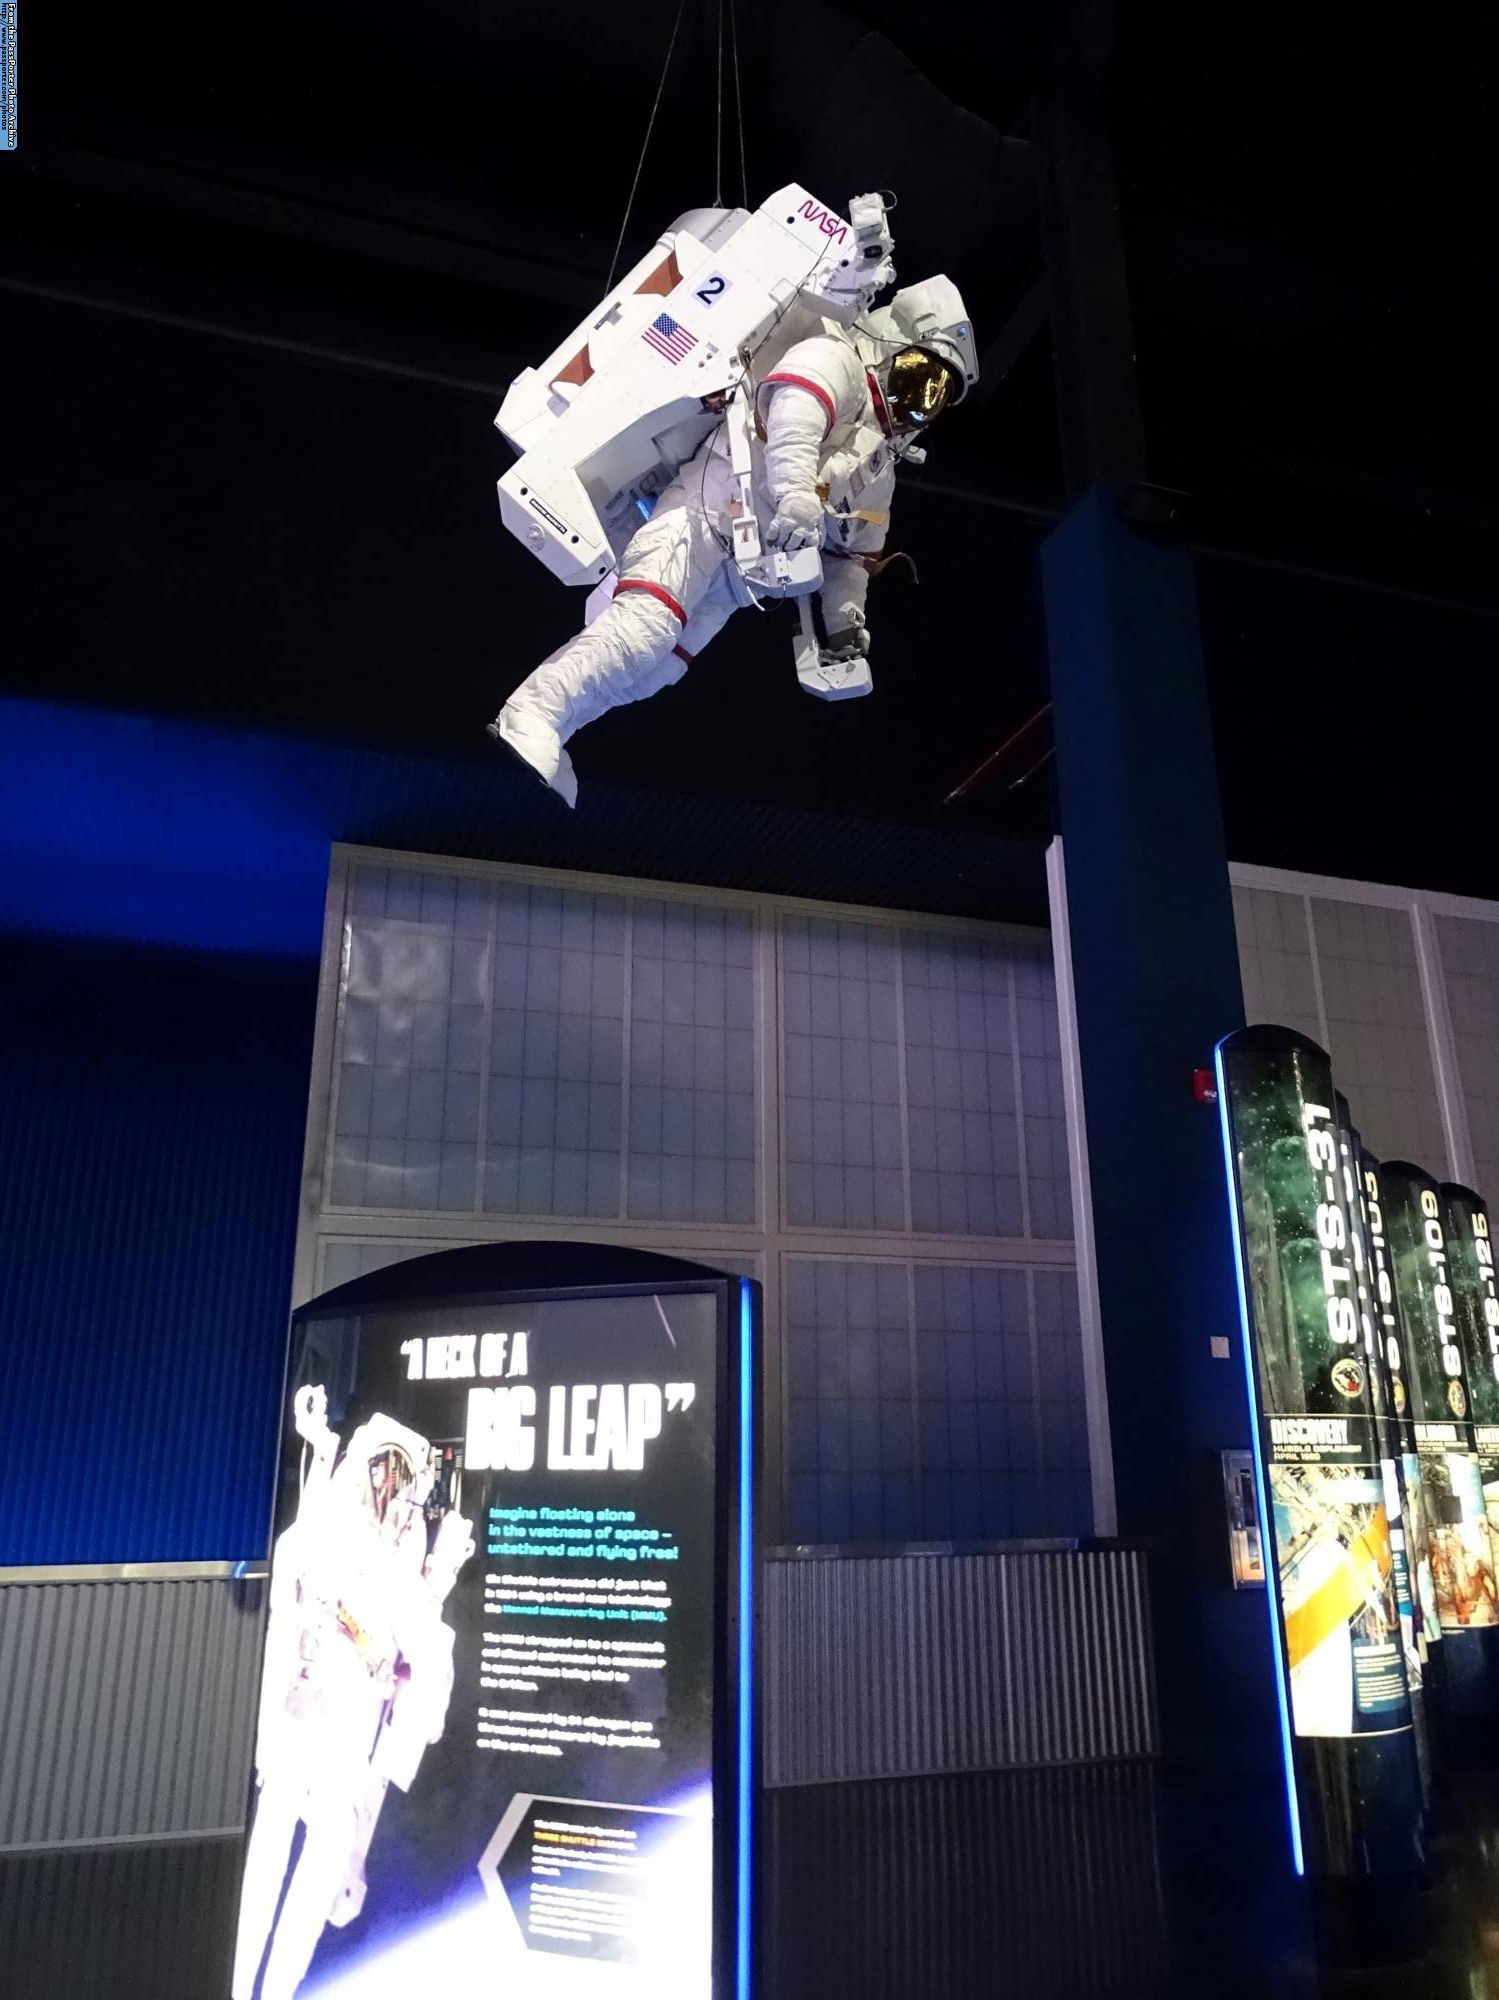 Explore the Atlantis Space Shuttle at Kennedy Space Center |PassPorter.com